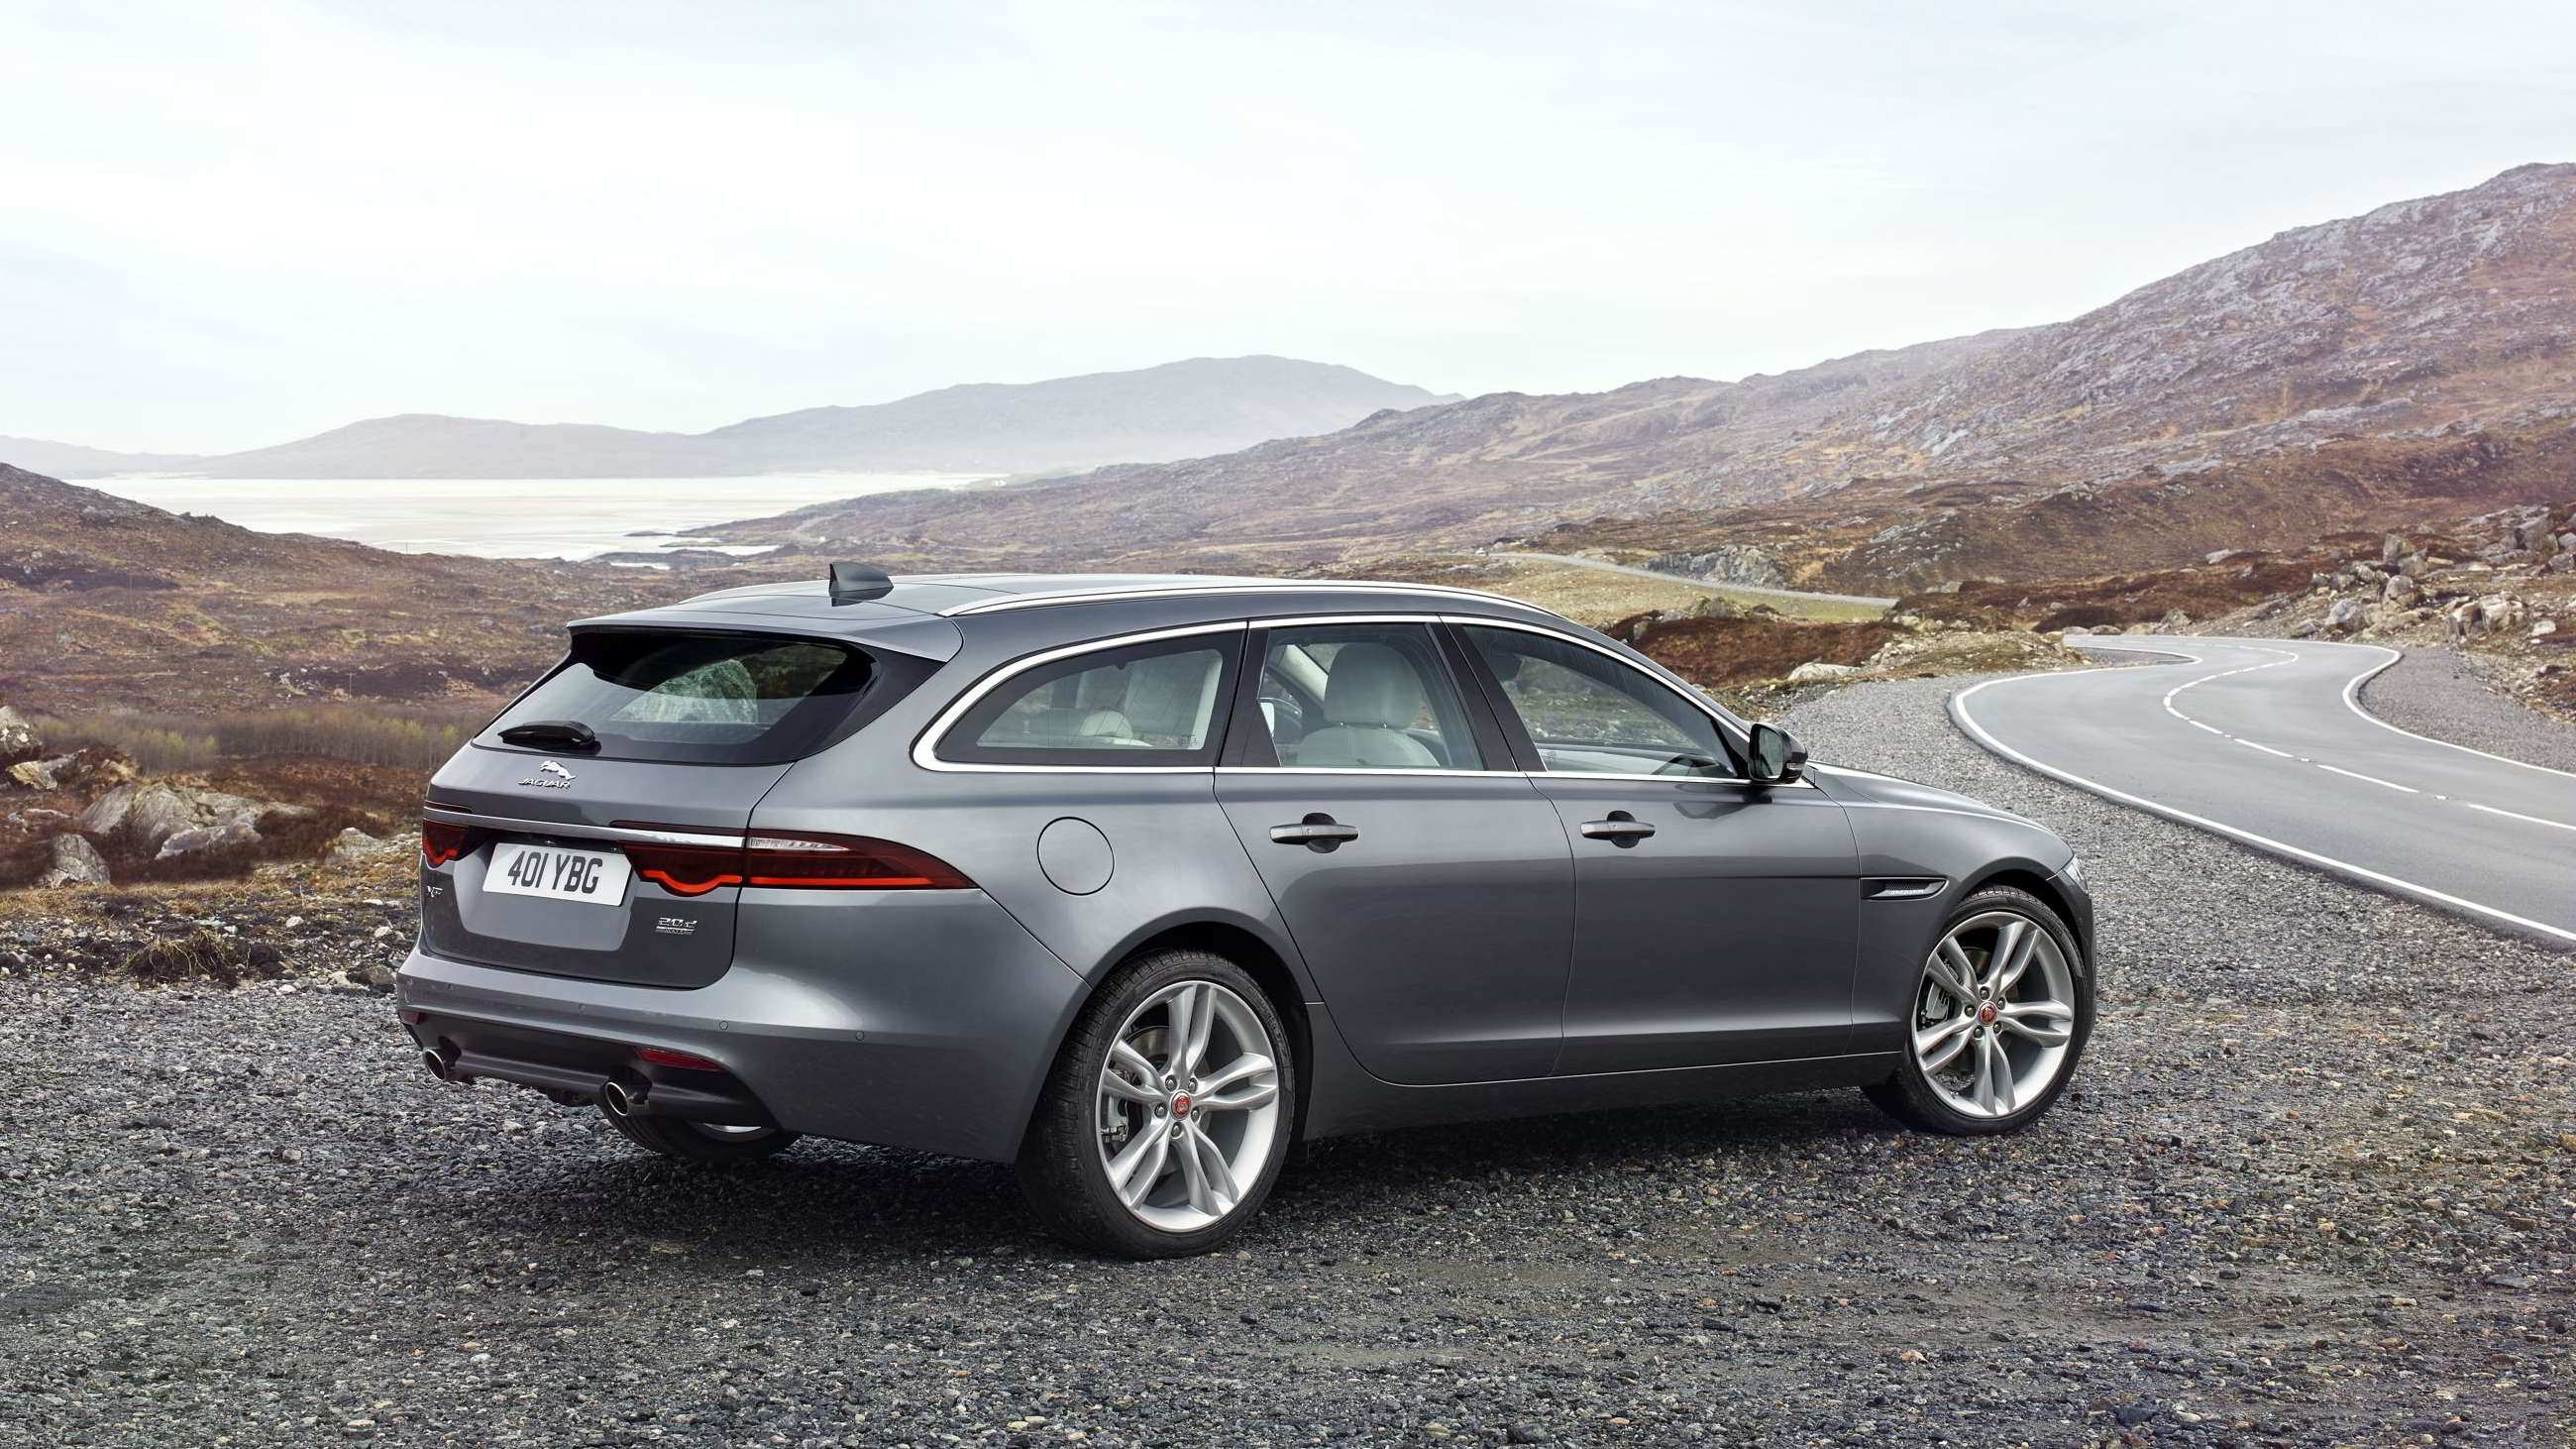 68 All New 2019 Jaguar Wagon Rumors with 2019 Jaguar Wagon